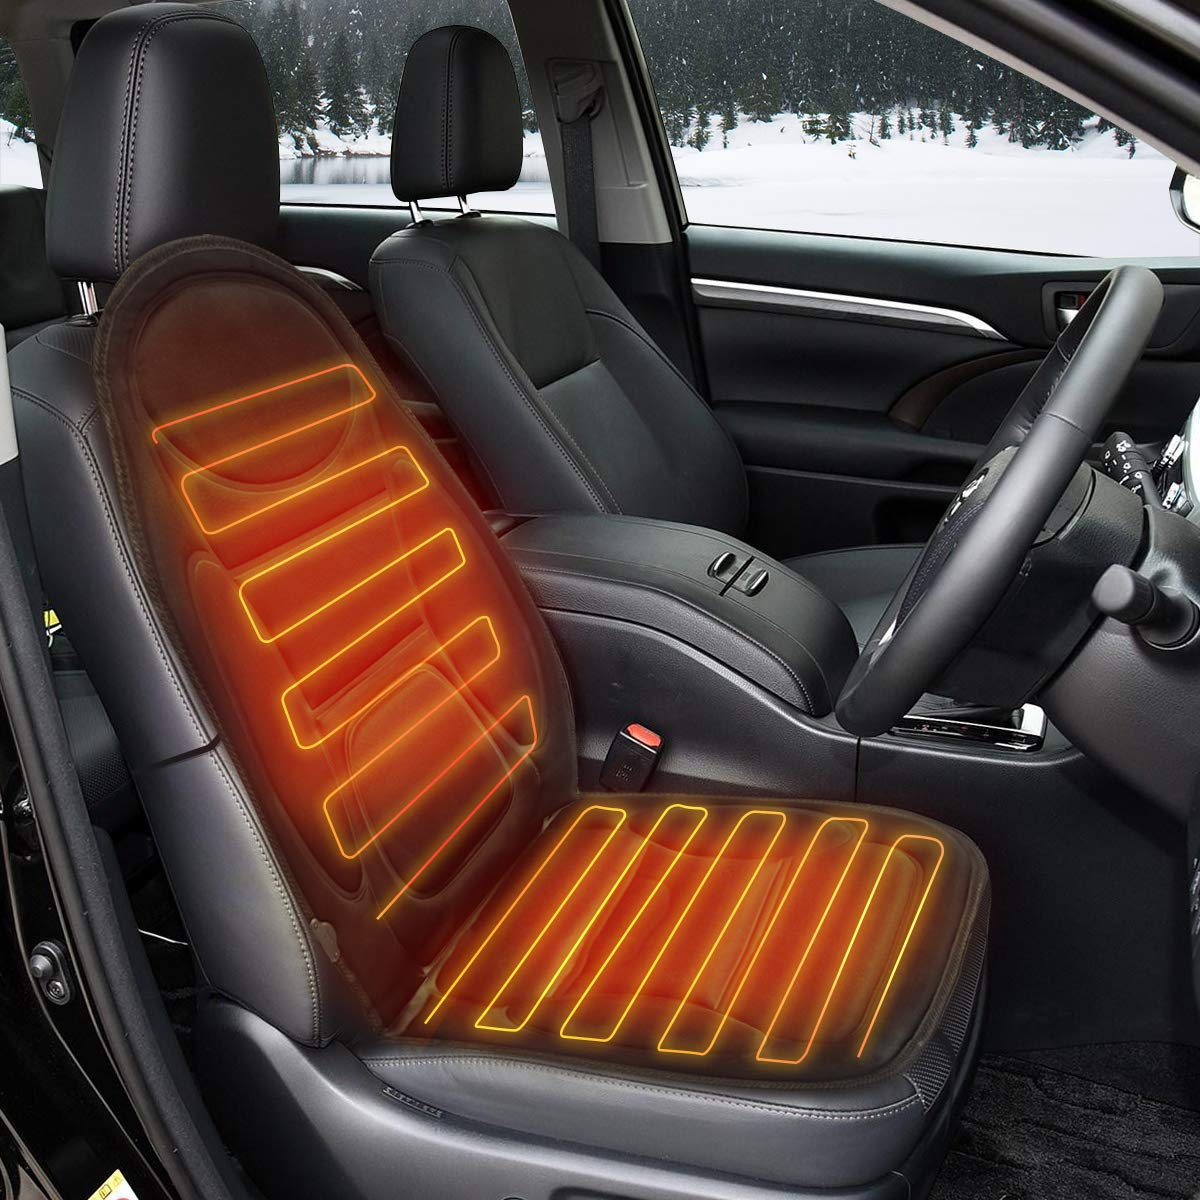 Tvird Heated Car Seat, 12V Car Heated Seat Cover Car Seat Warmer with 3-Way Temperature Controller, Heated Seat Cushion Car Heater (Black) Baogujasy TVIRDYUYUEWUEDFU25